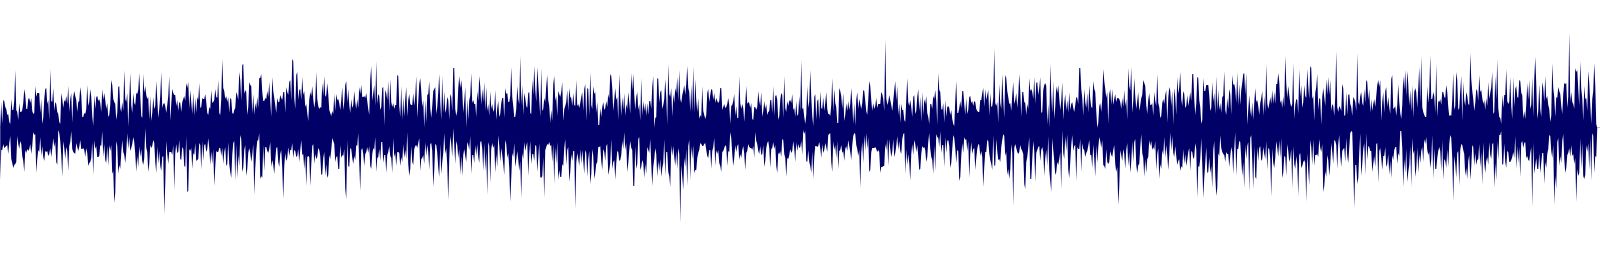 waveform of track #137841